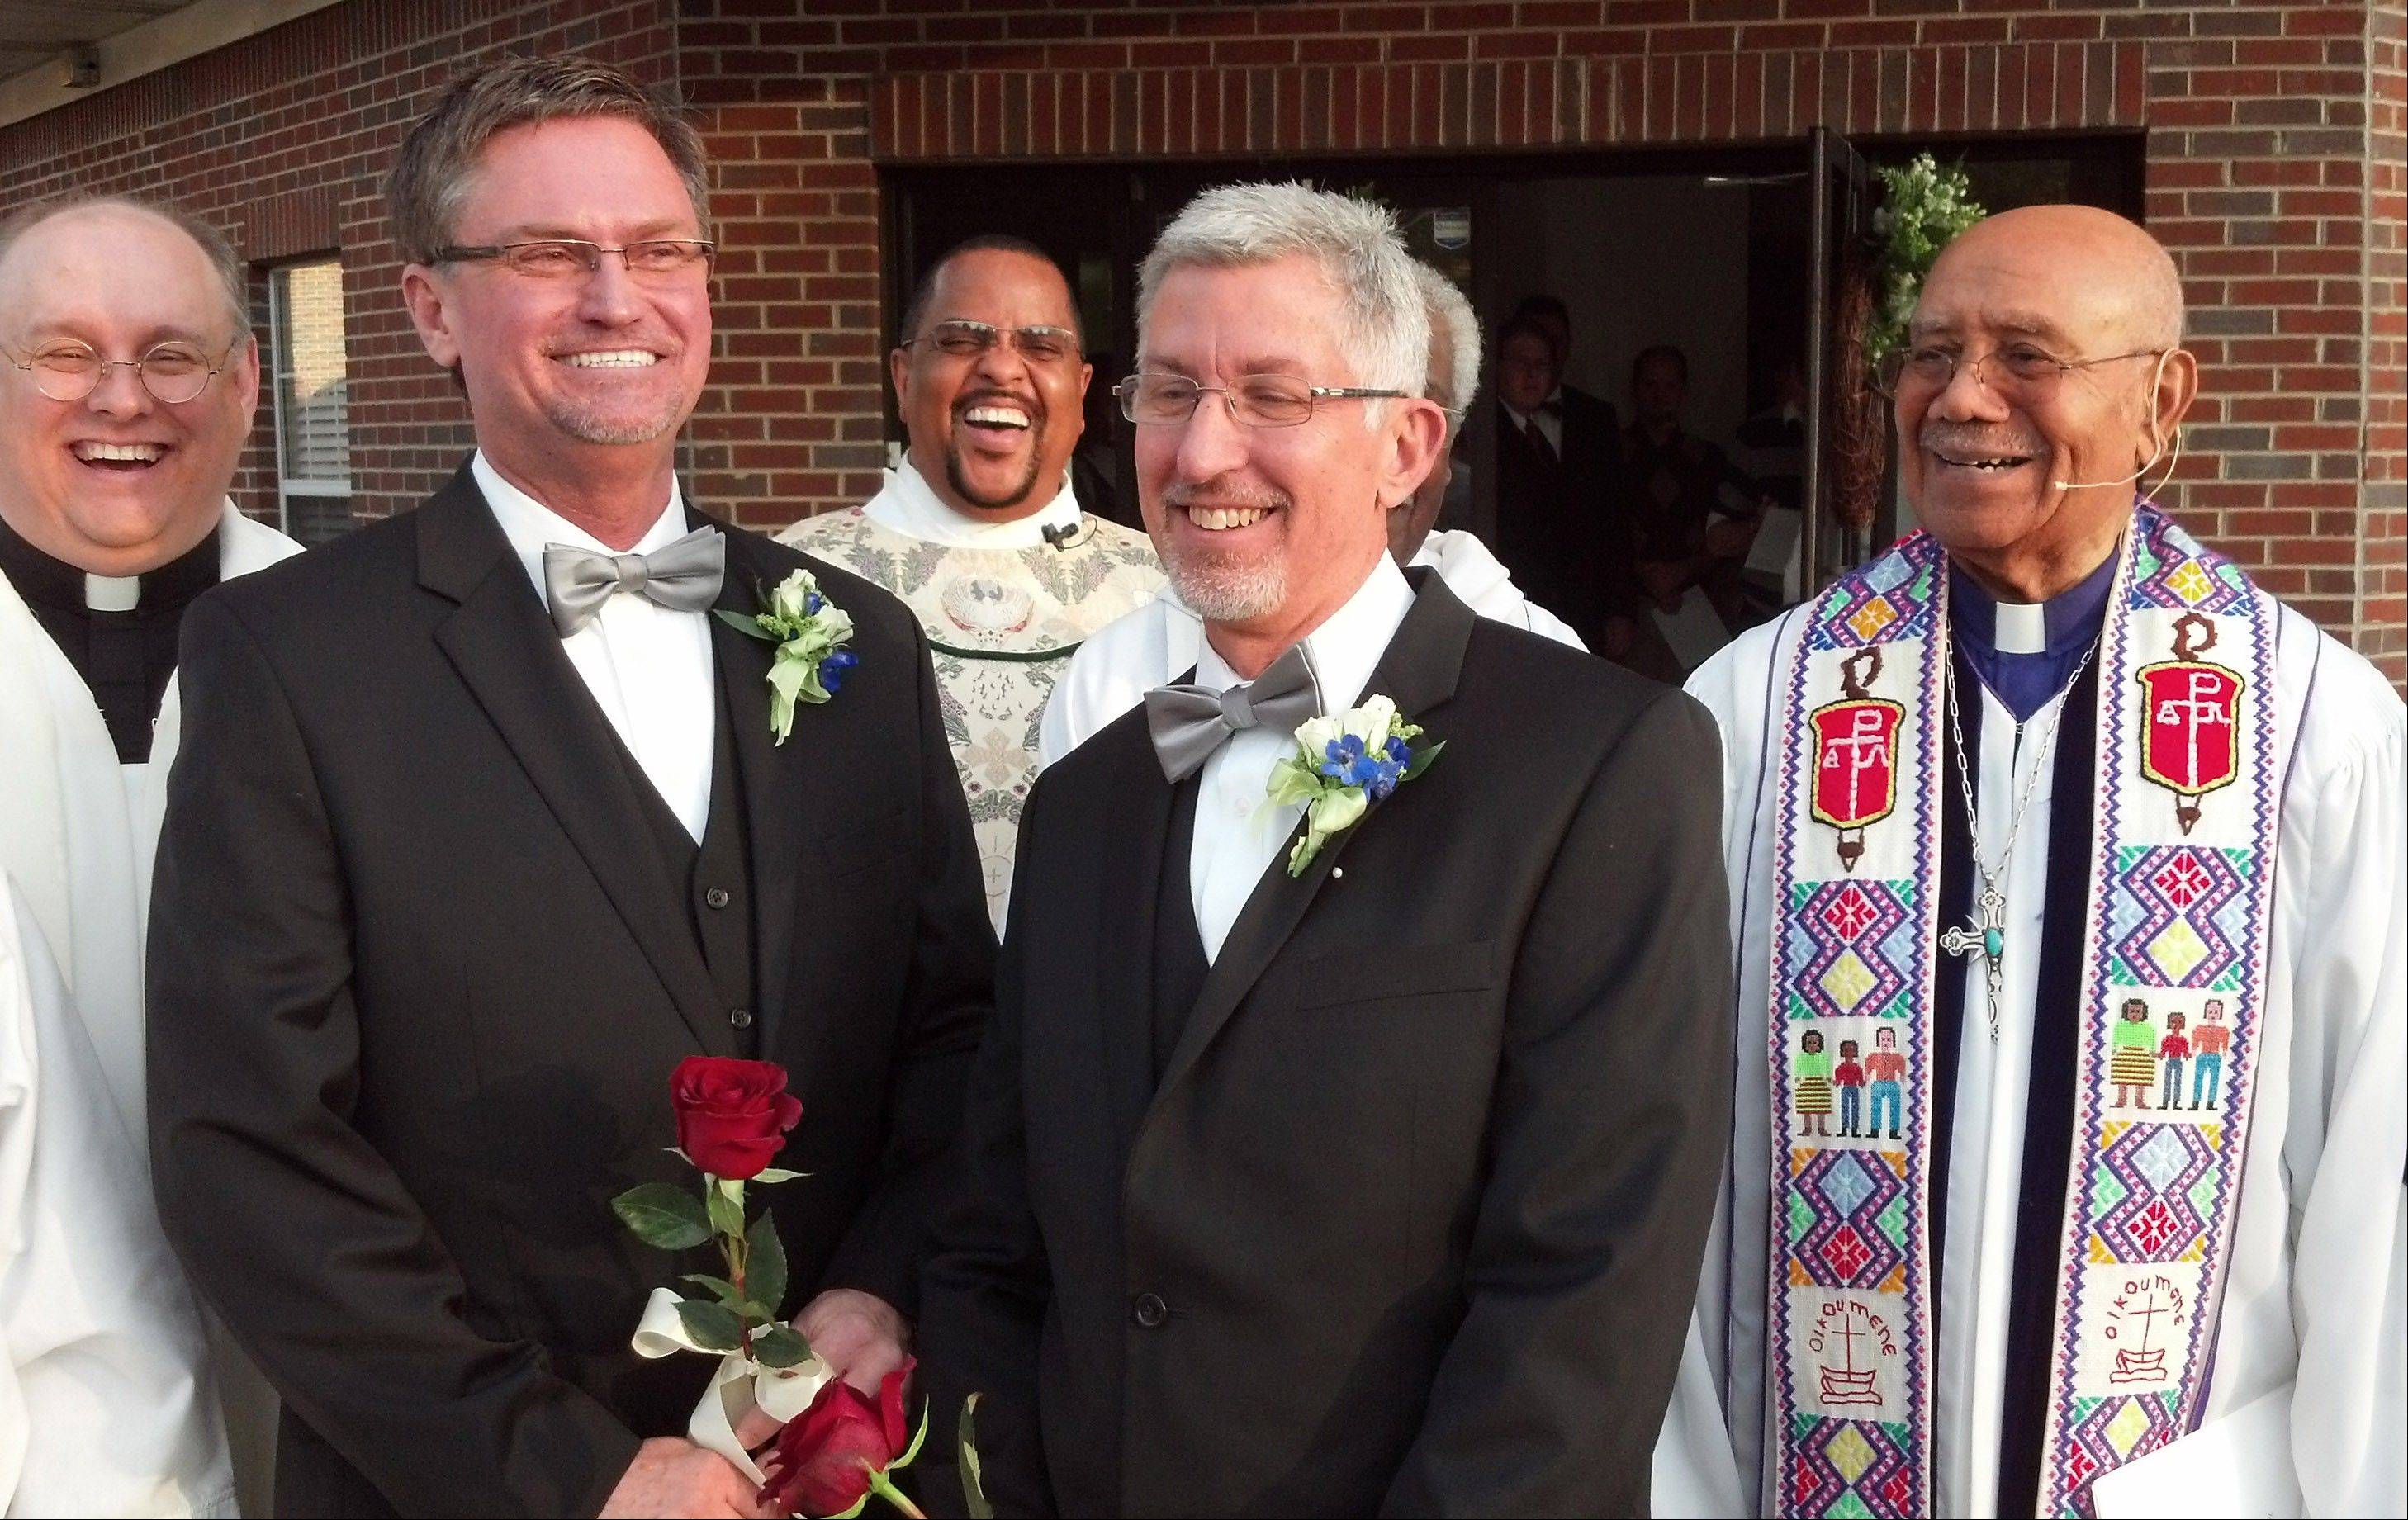 From left, the Rev. Kevin Higgs, Bobby Prince, the Rev. J.R. Finney, Joe Openshaw and retired Bishop Melvin Talbert stand together after Talbert officiated Prince and Openshaw�s wedding in Birmingham, Ala. on Saturday, Oct. 26, 2013. The Council of Bishops has called for a formal complaint against Talbert, who presided at the wedding over the objections of a local bishop.